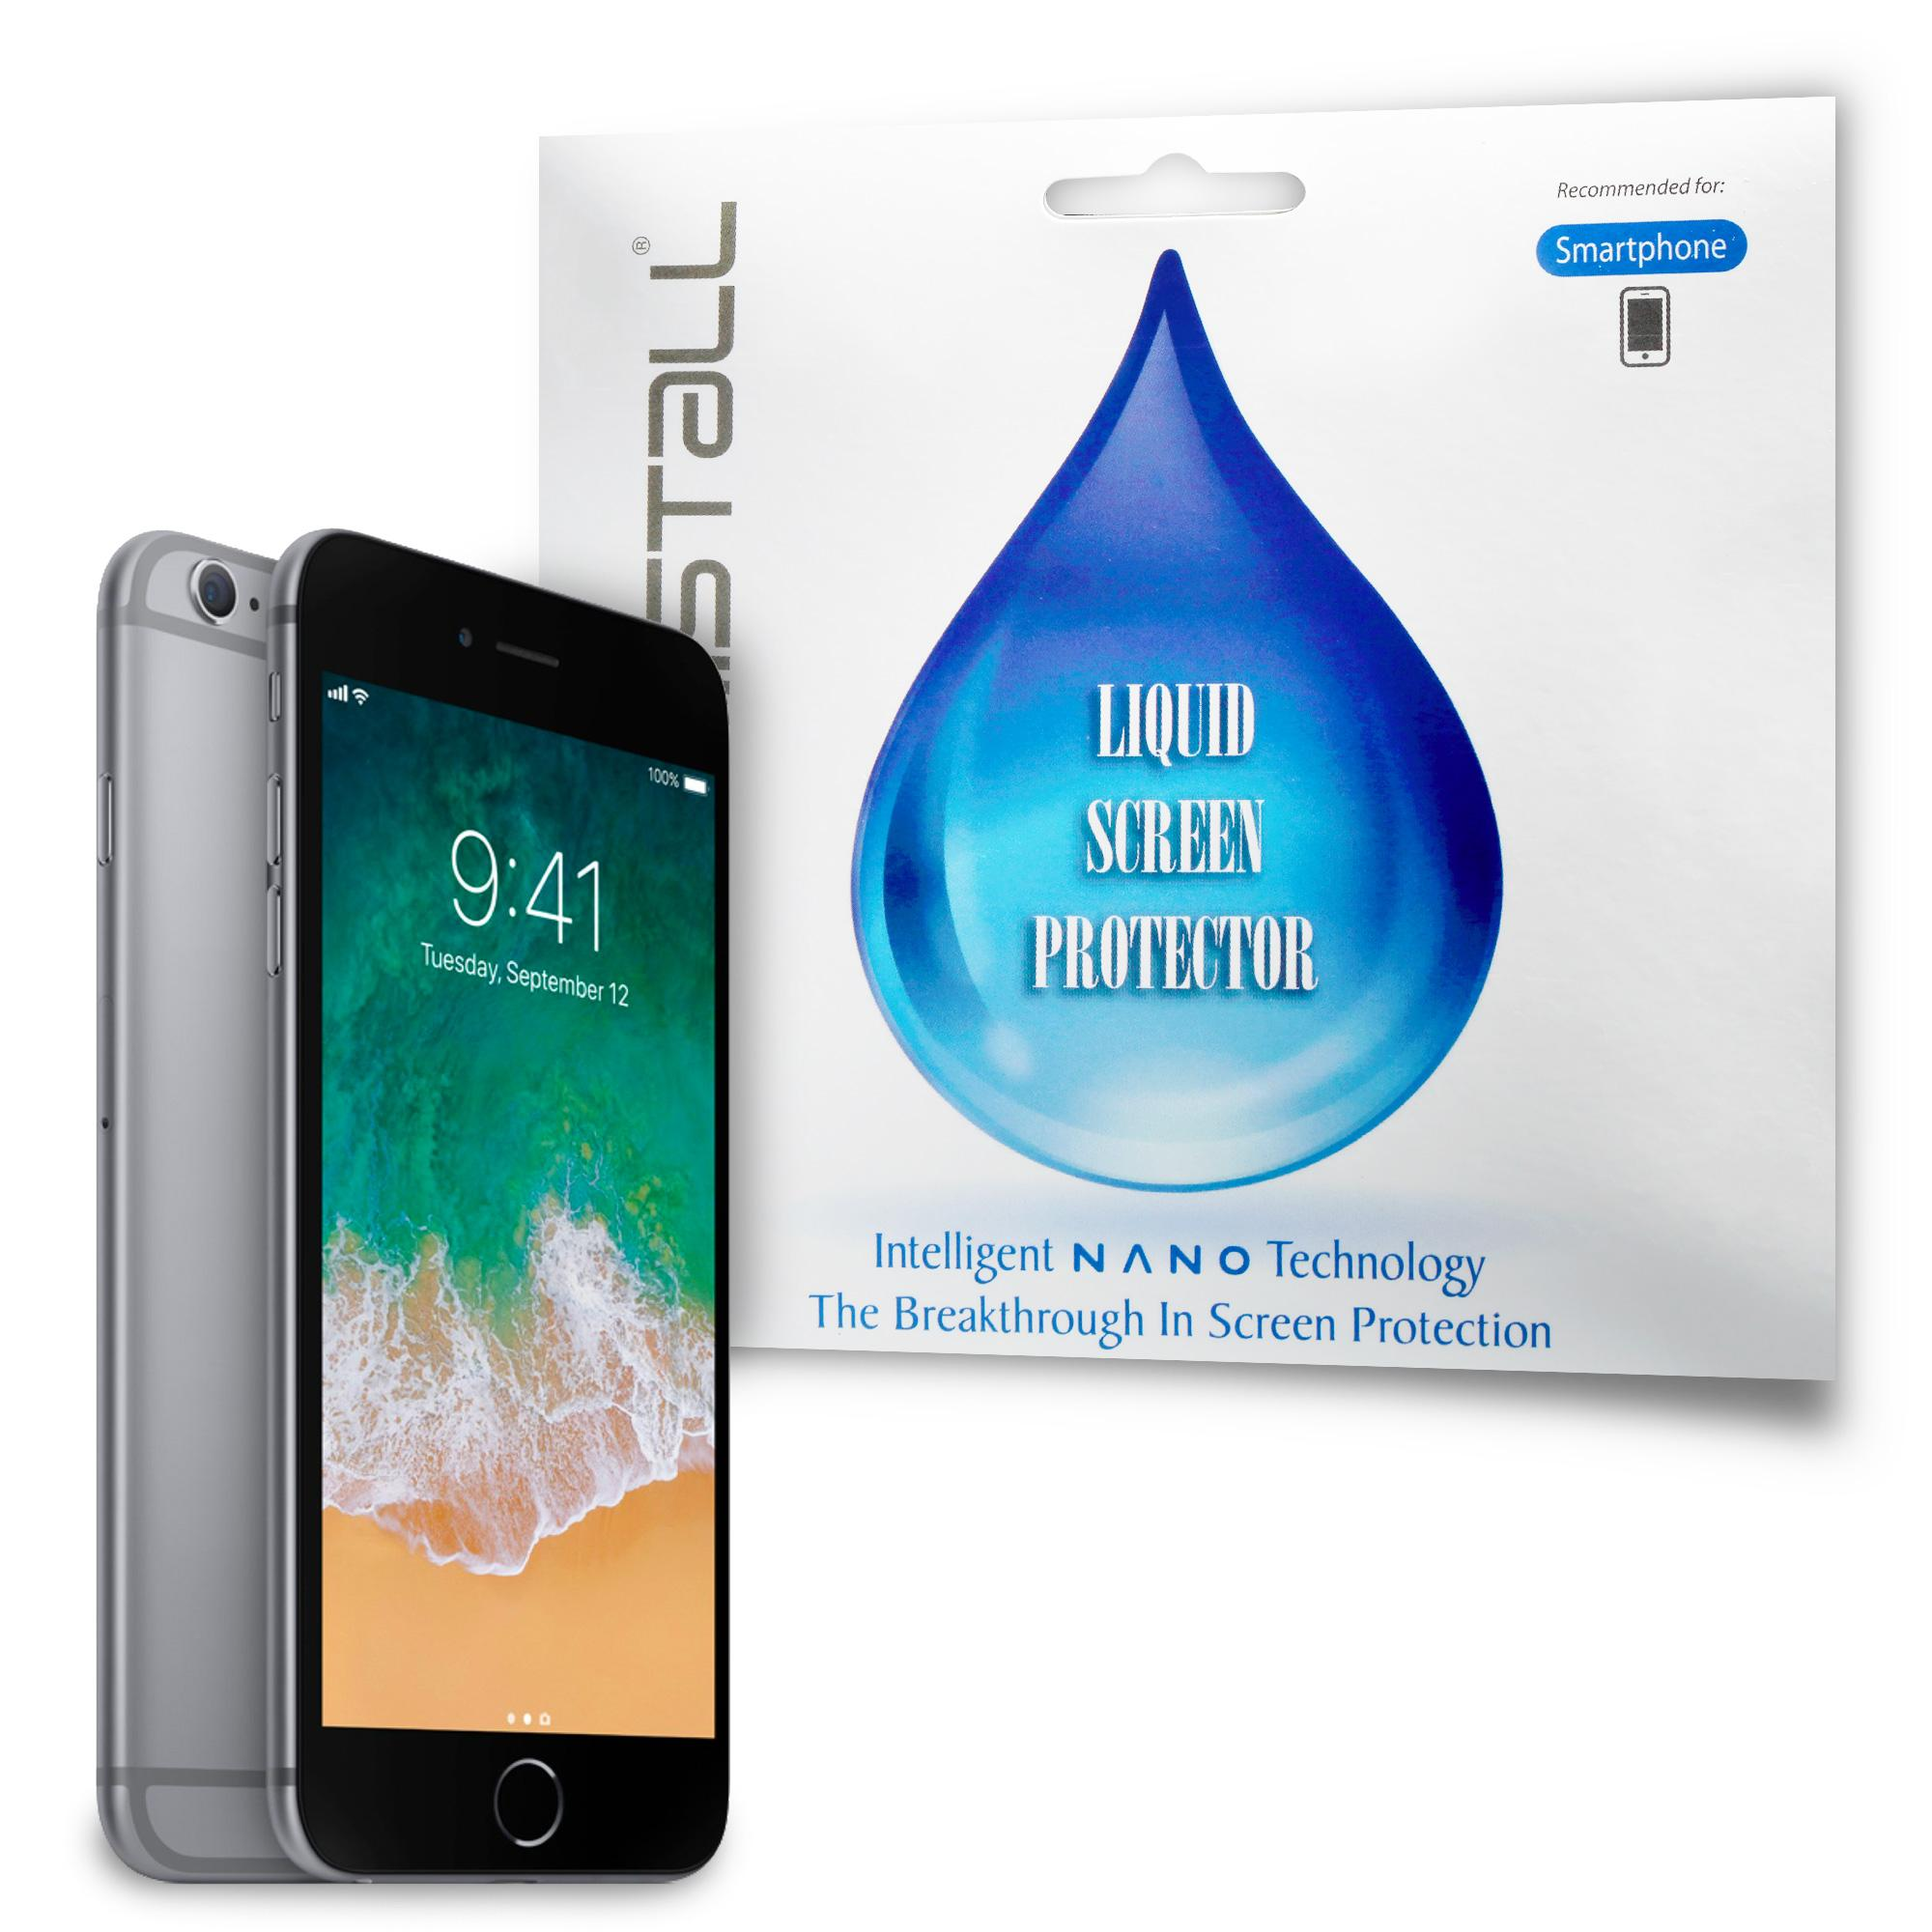 Apple iPhone 6 or iPhone 6 Plus Screen Protector - Kristall® Nano Liquid Screen Protector (Bubble-FREE Screen Protector, 9H Hardness, Scratch Resistant)